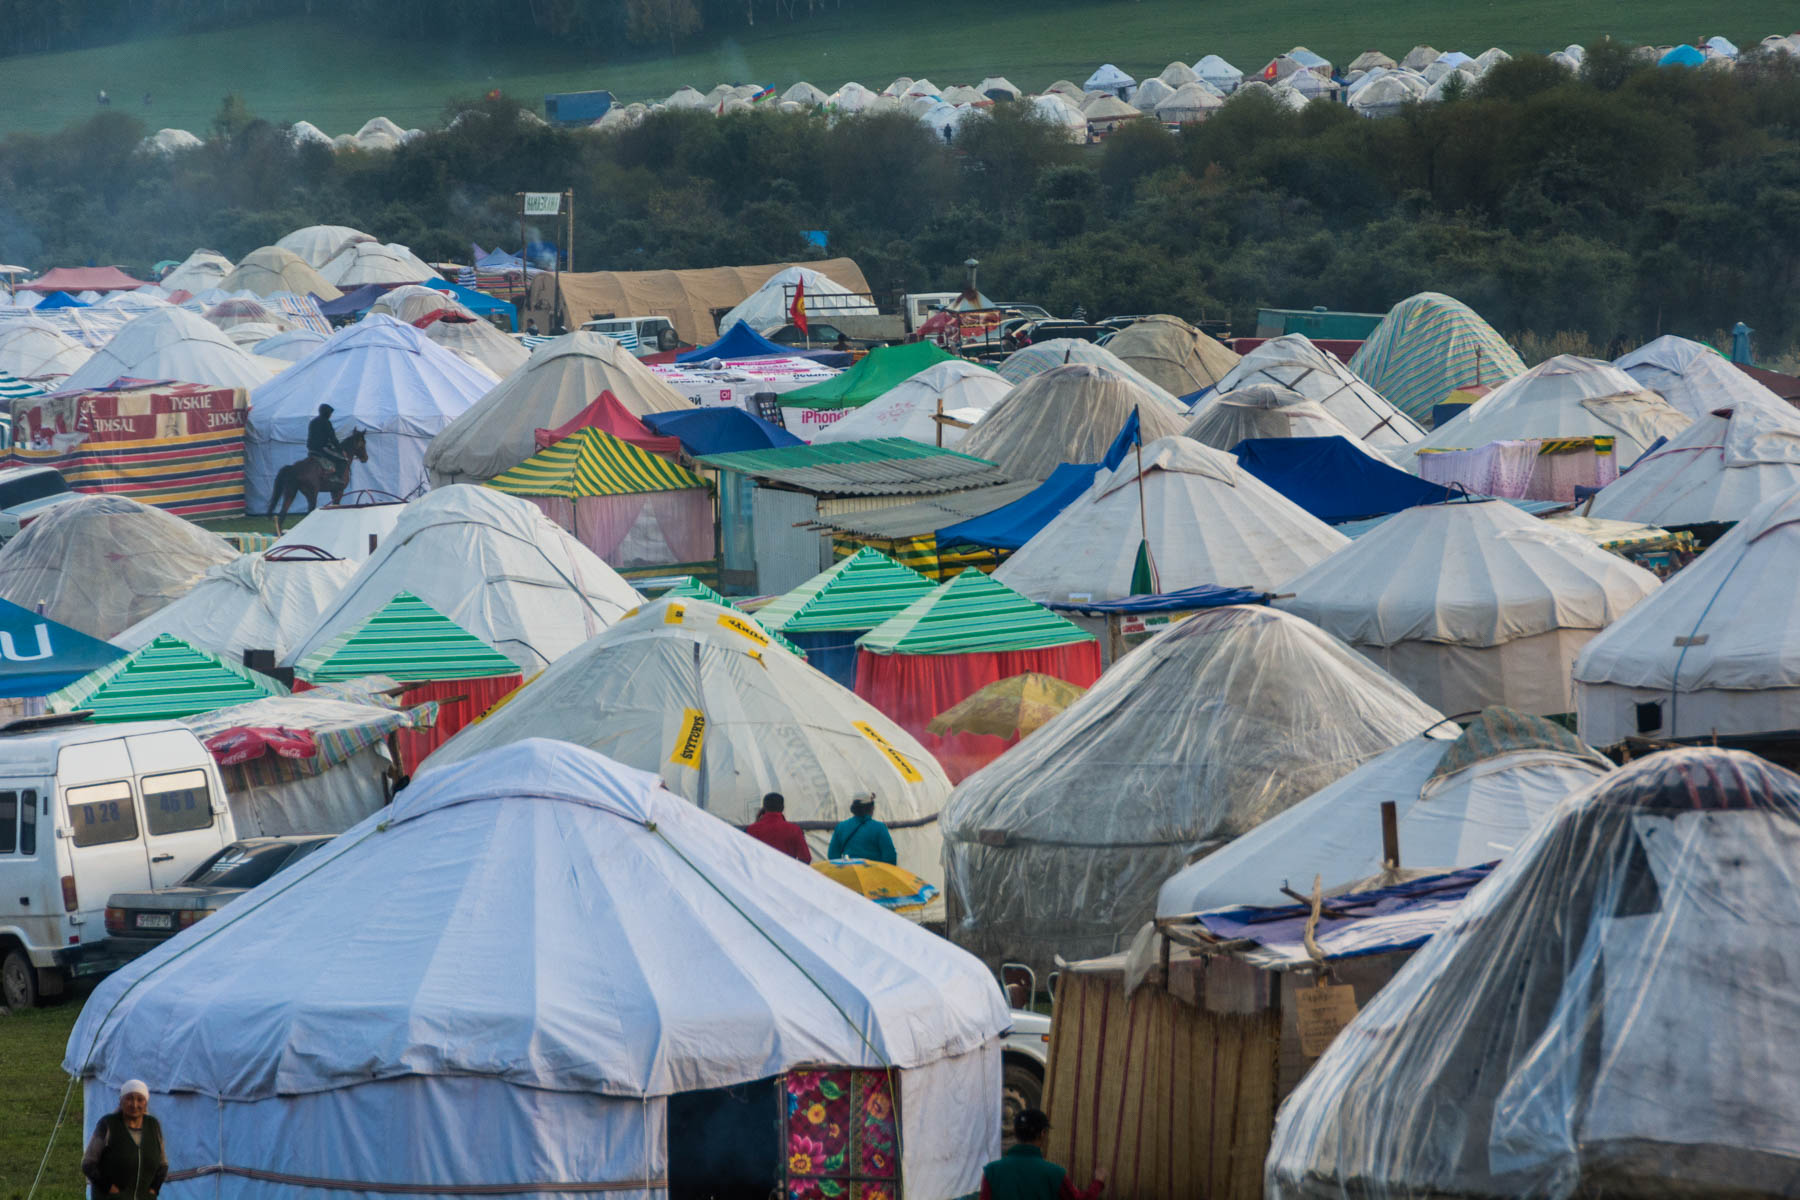 A yurt camp at the 2016 World Nomad Games